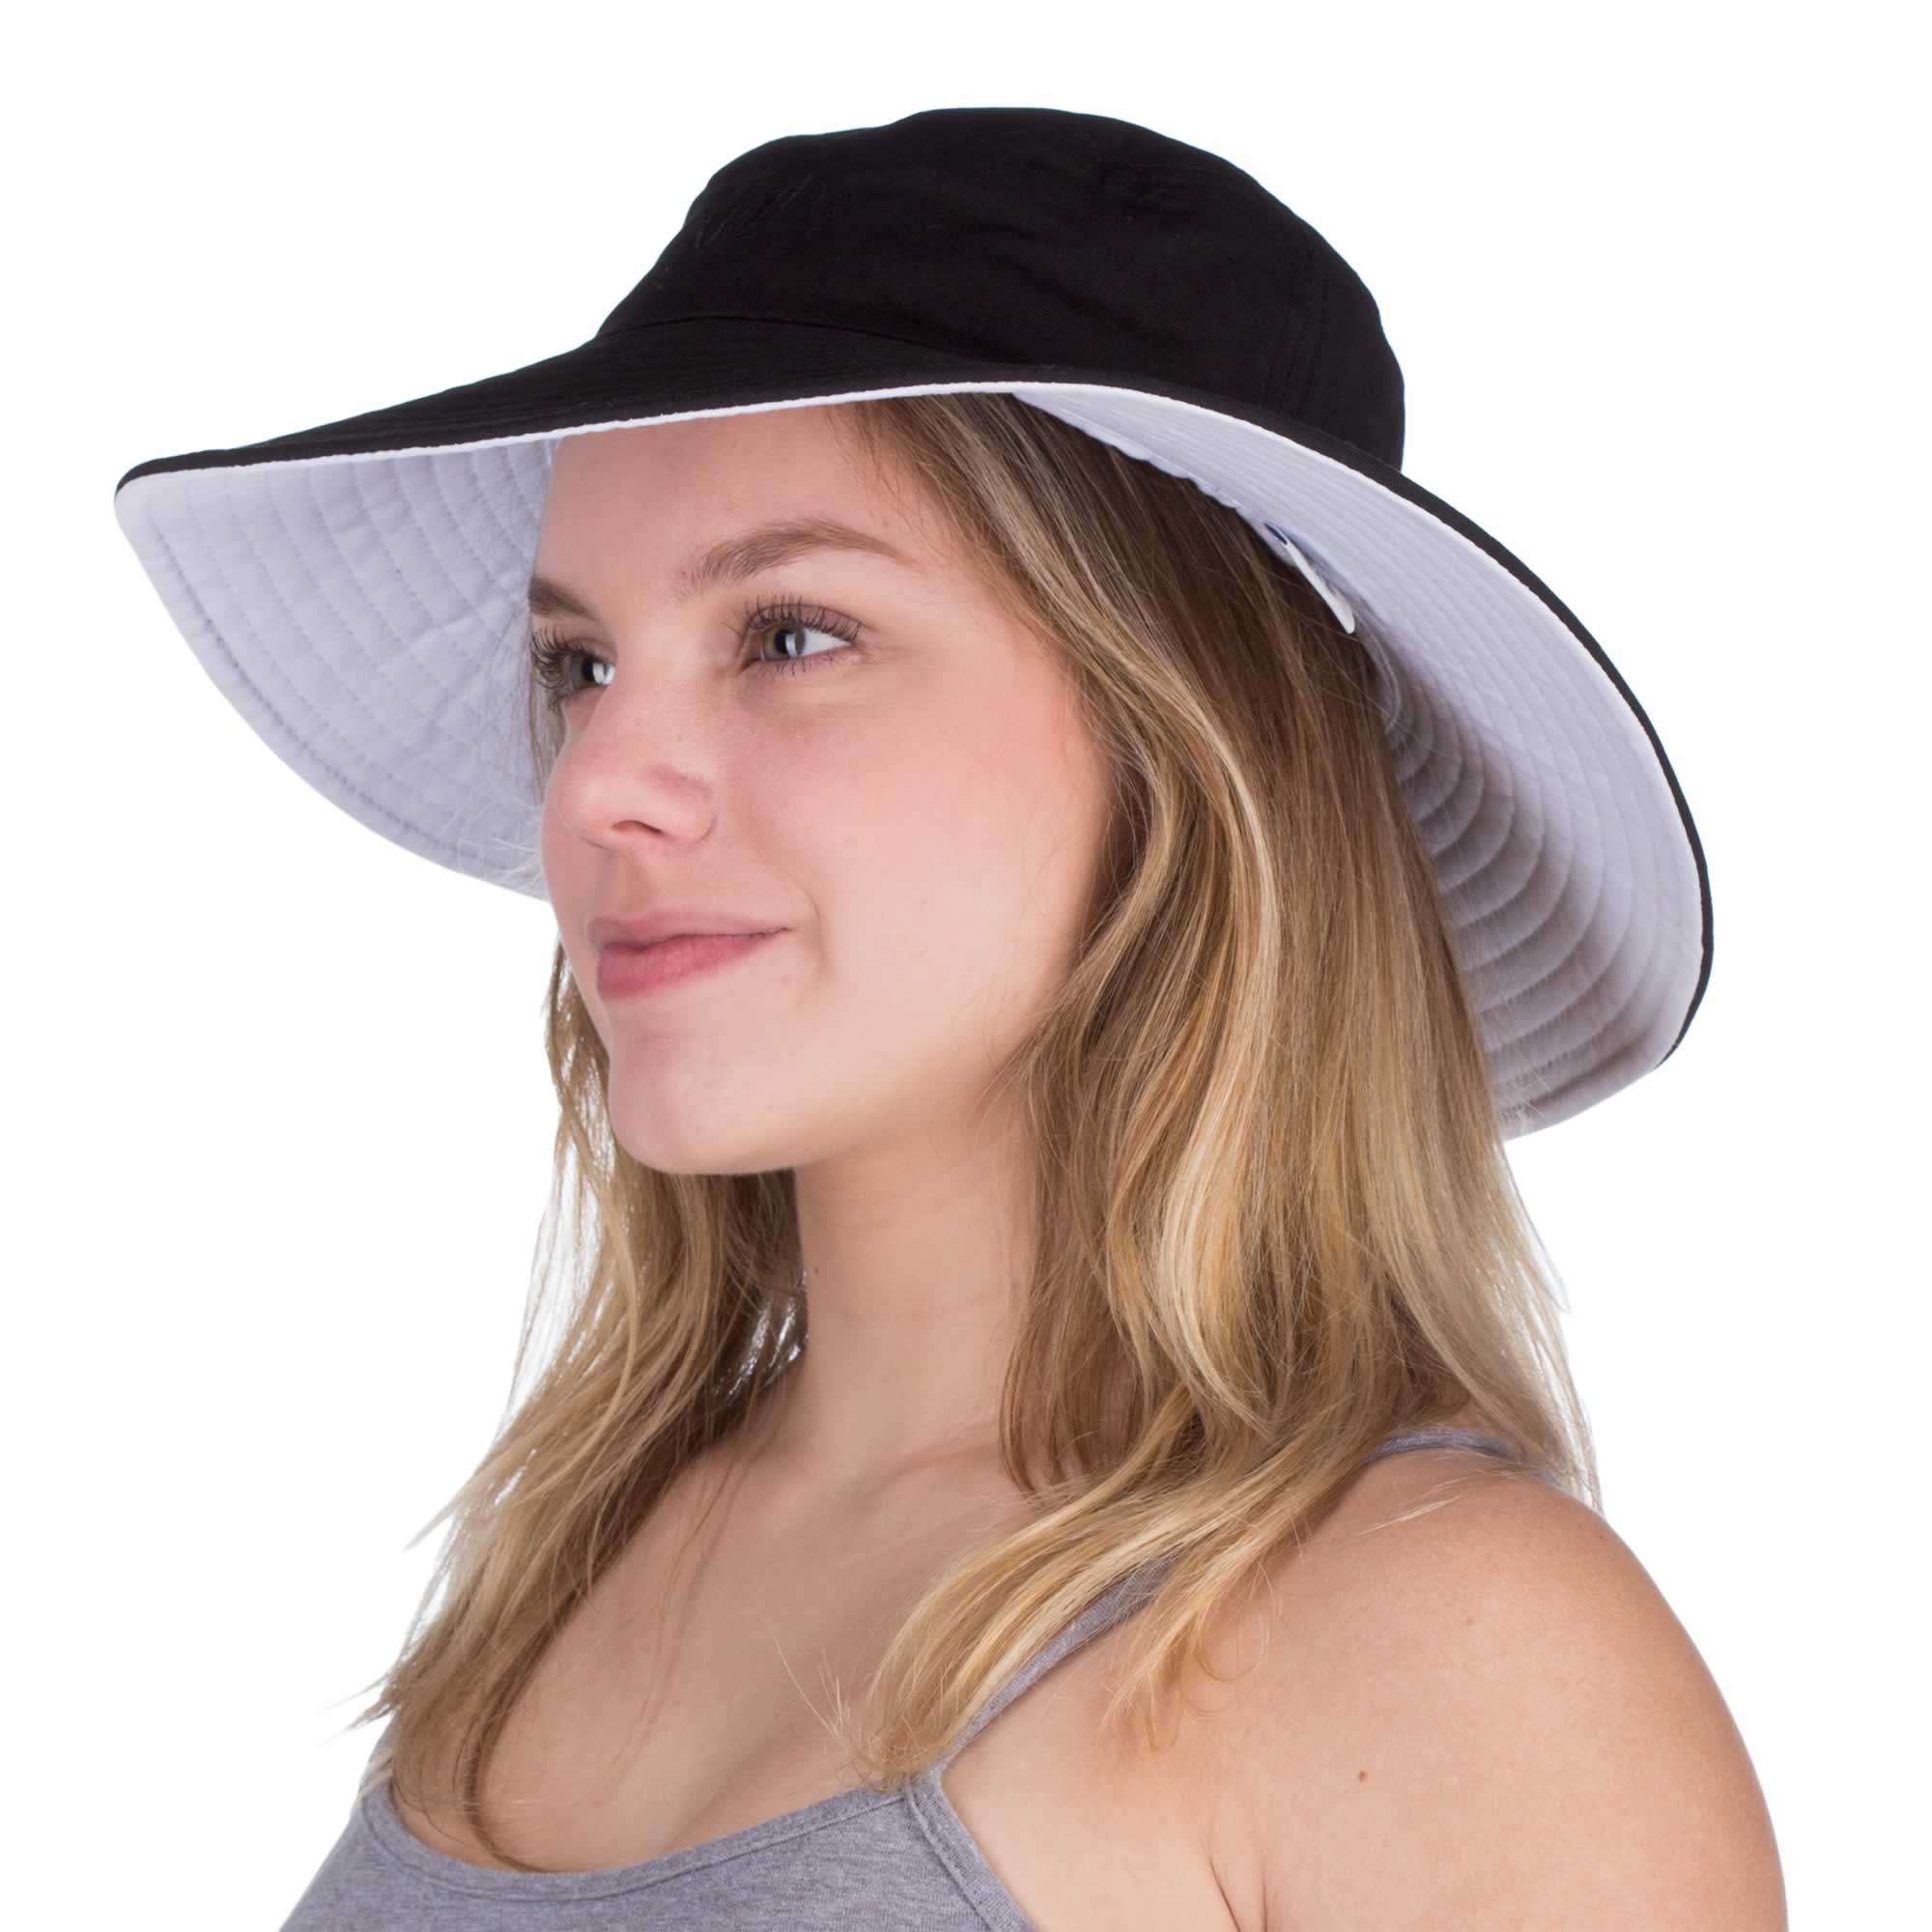 169752ad394e4 Womens Wide Brim Reversible Sun Hat - UV-Blocker